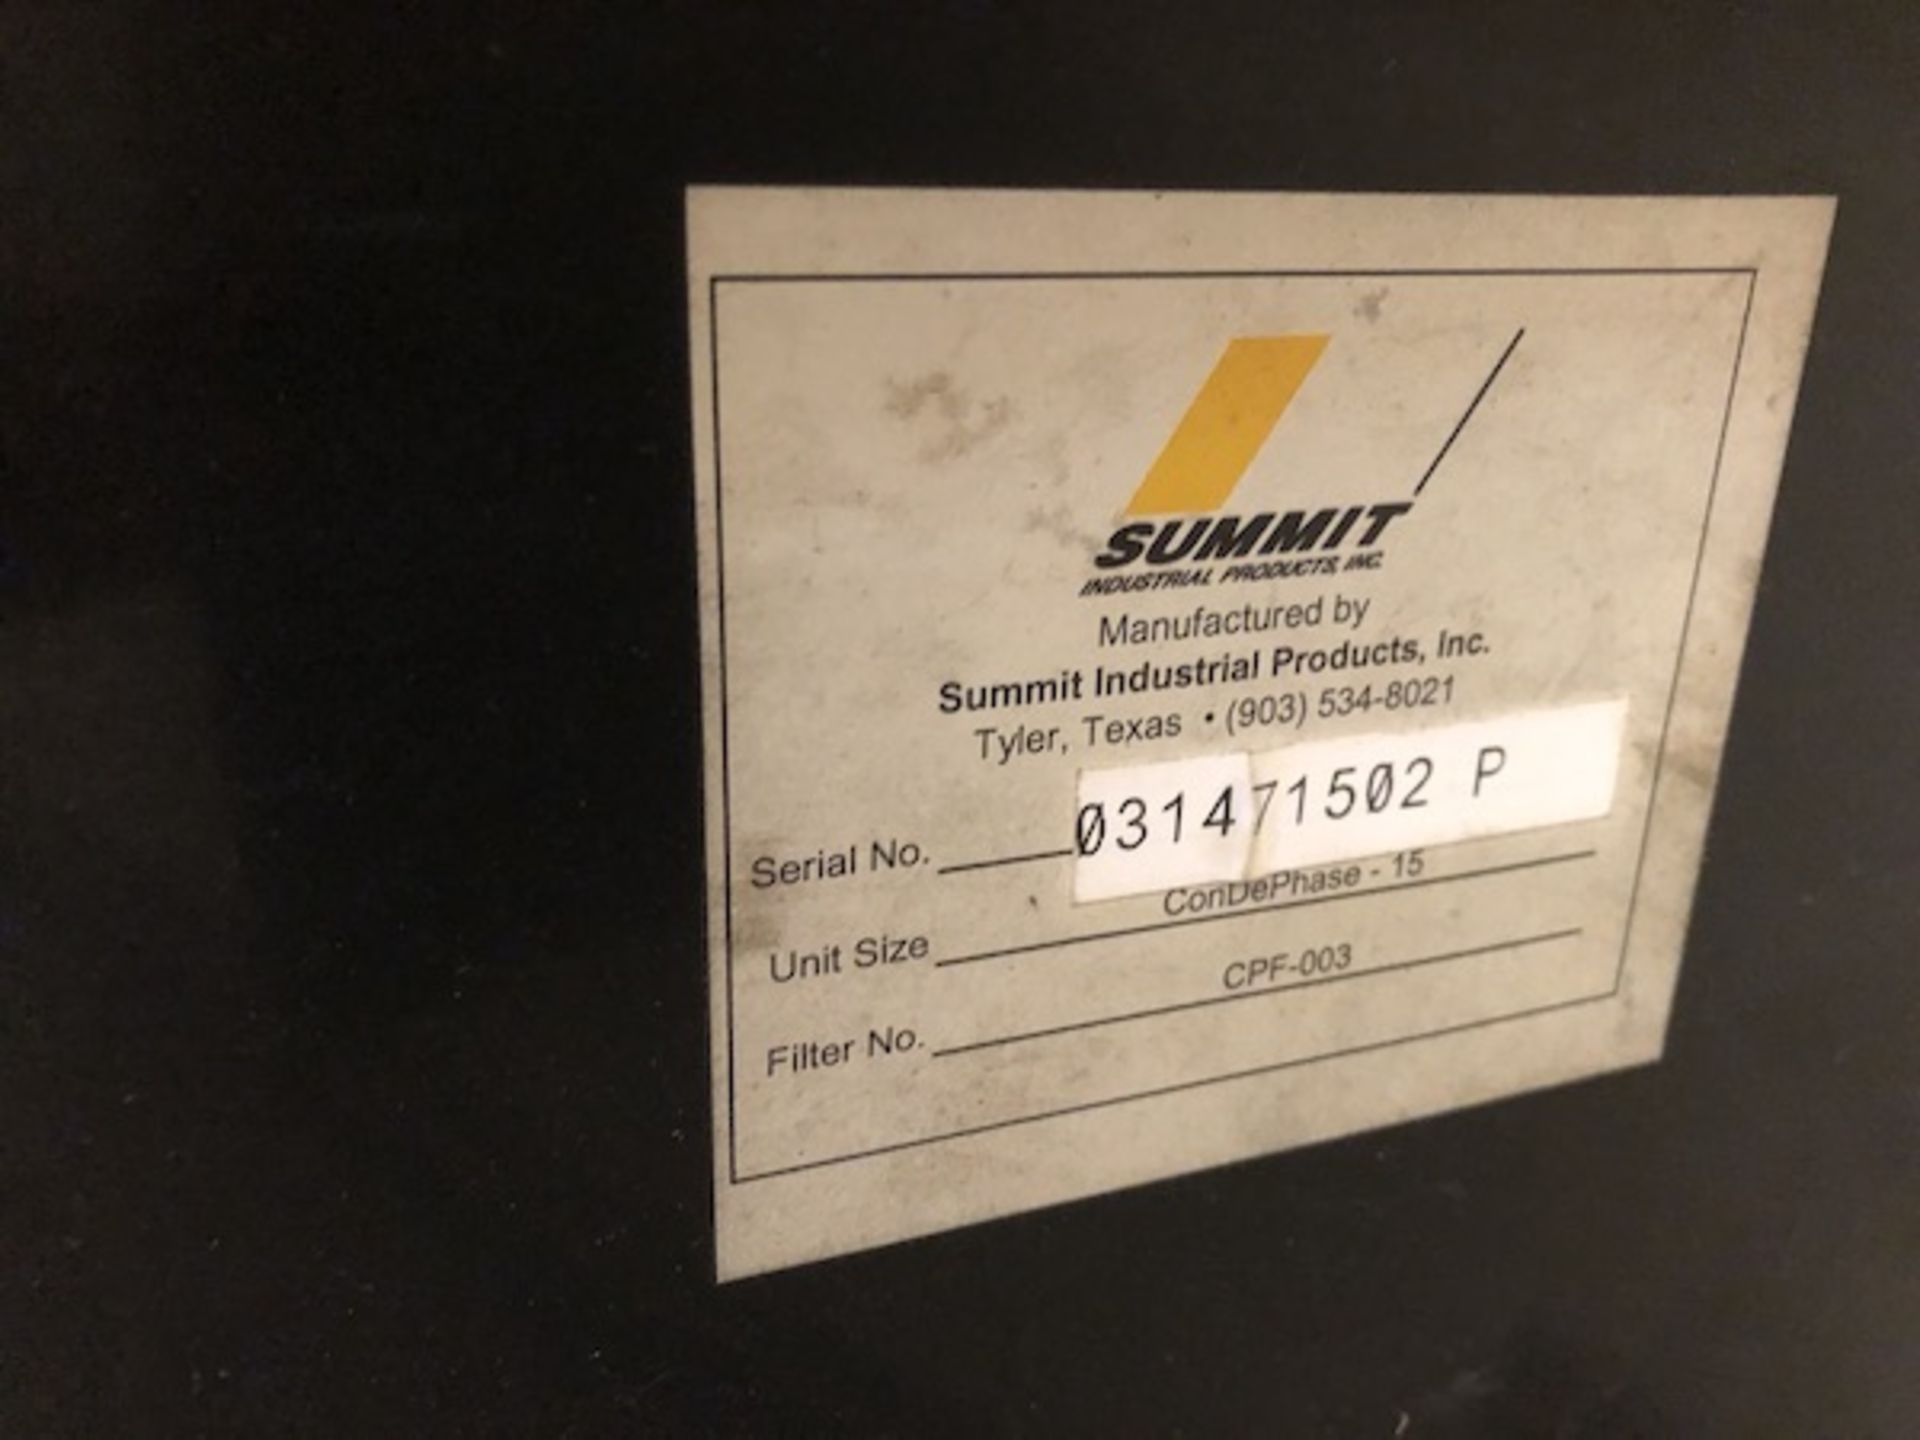 Lot 88 - Summit Industries ConDePhase Plus oil/water seperator for air compressor.